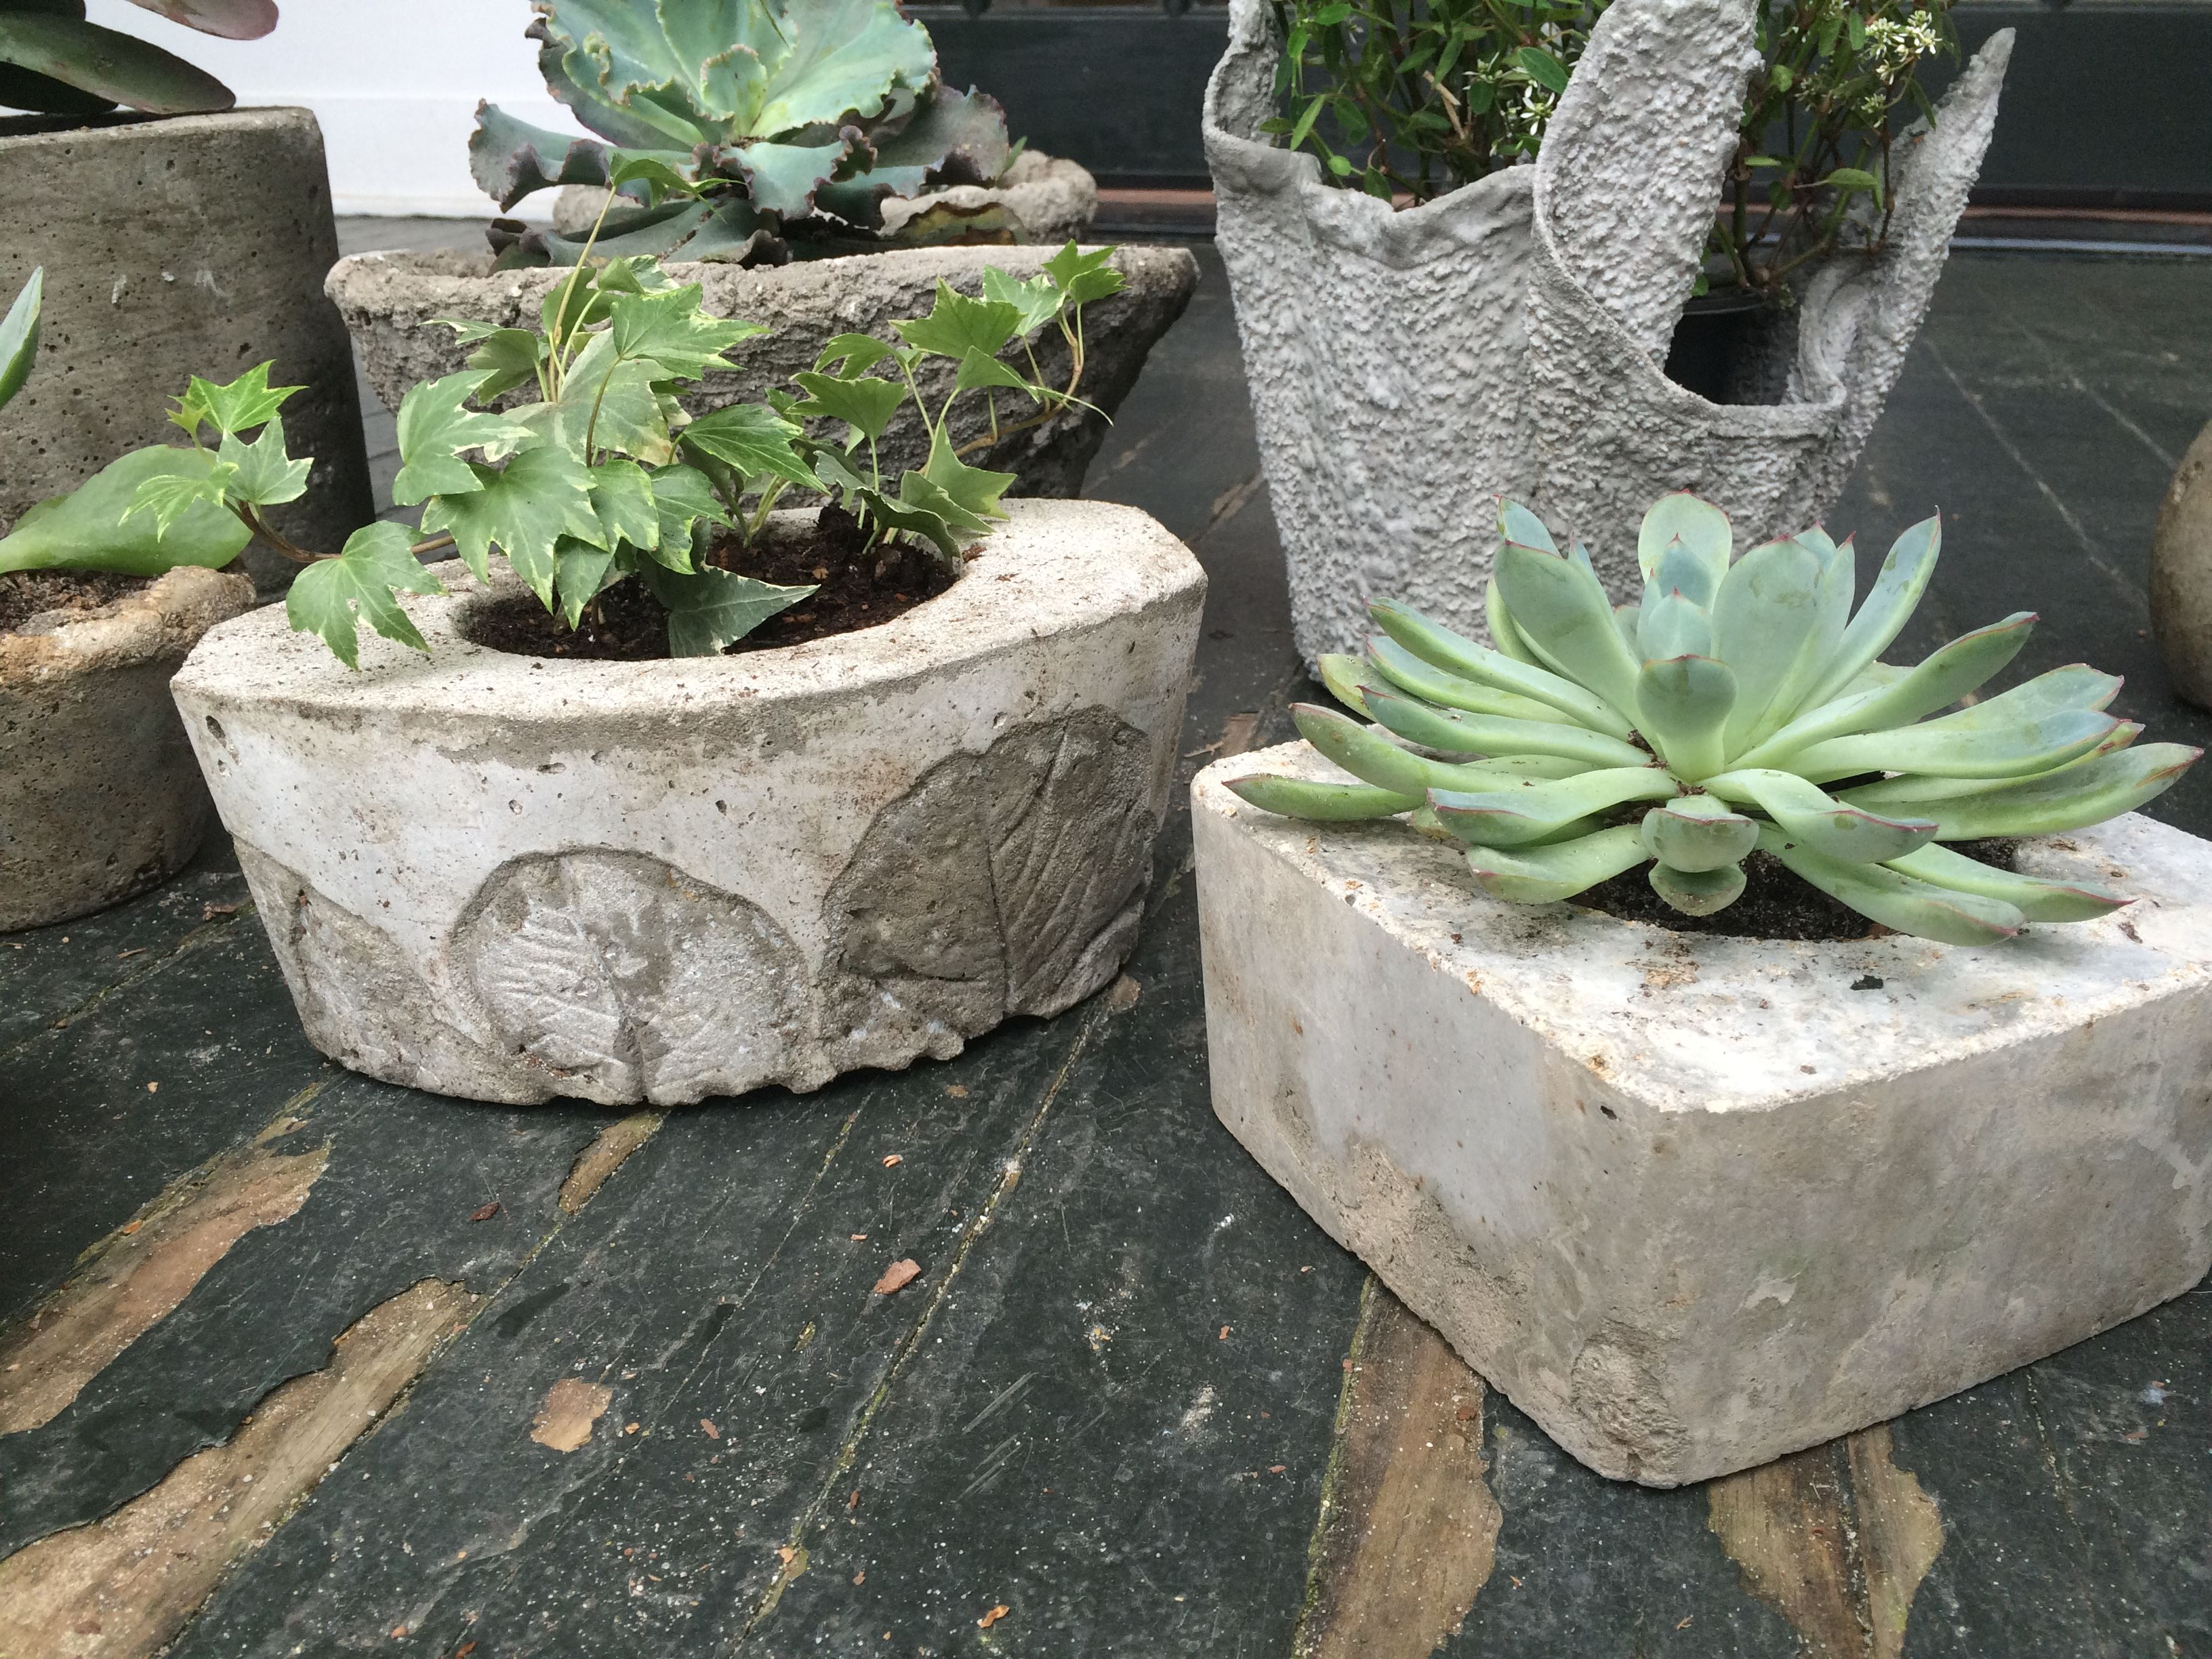 Happy succulents and ivy in concrete planters, the one on the left is imprinted with butter leaf lettuce.